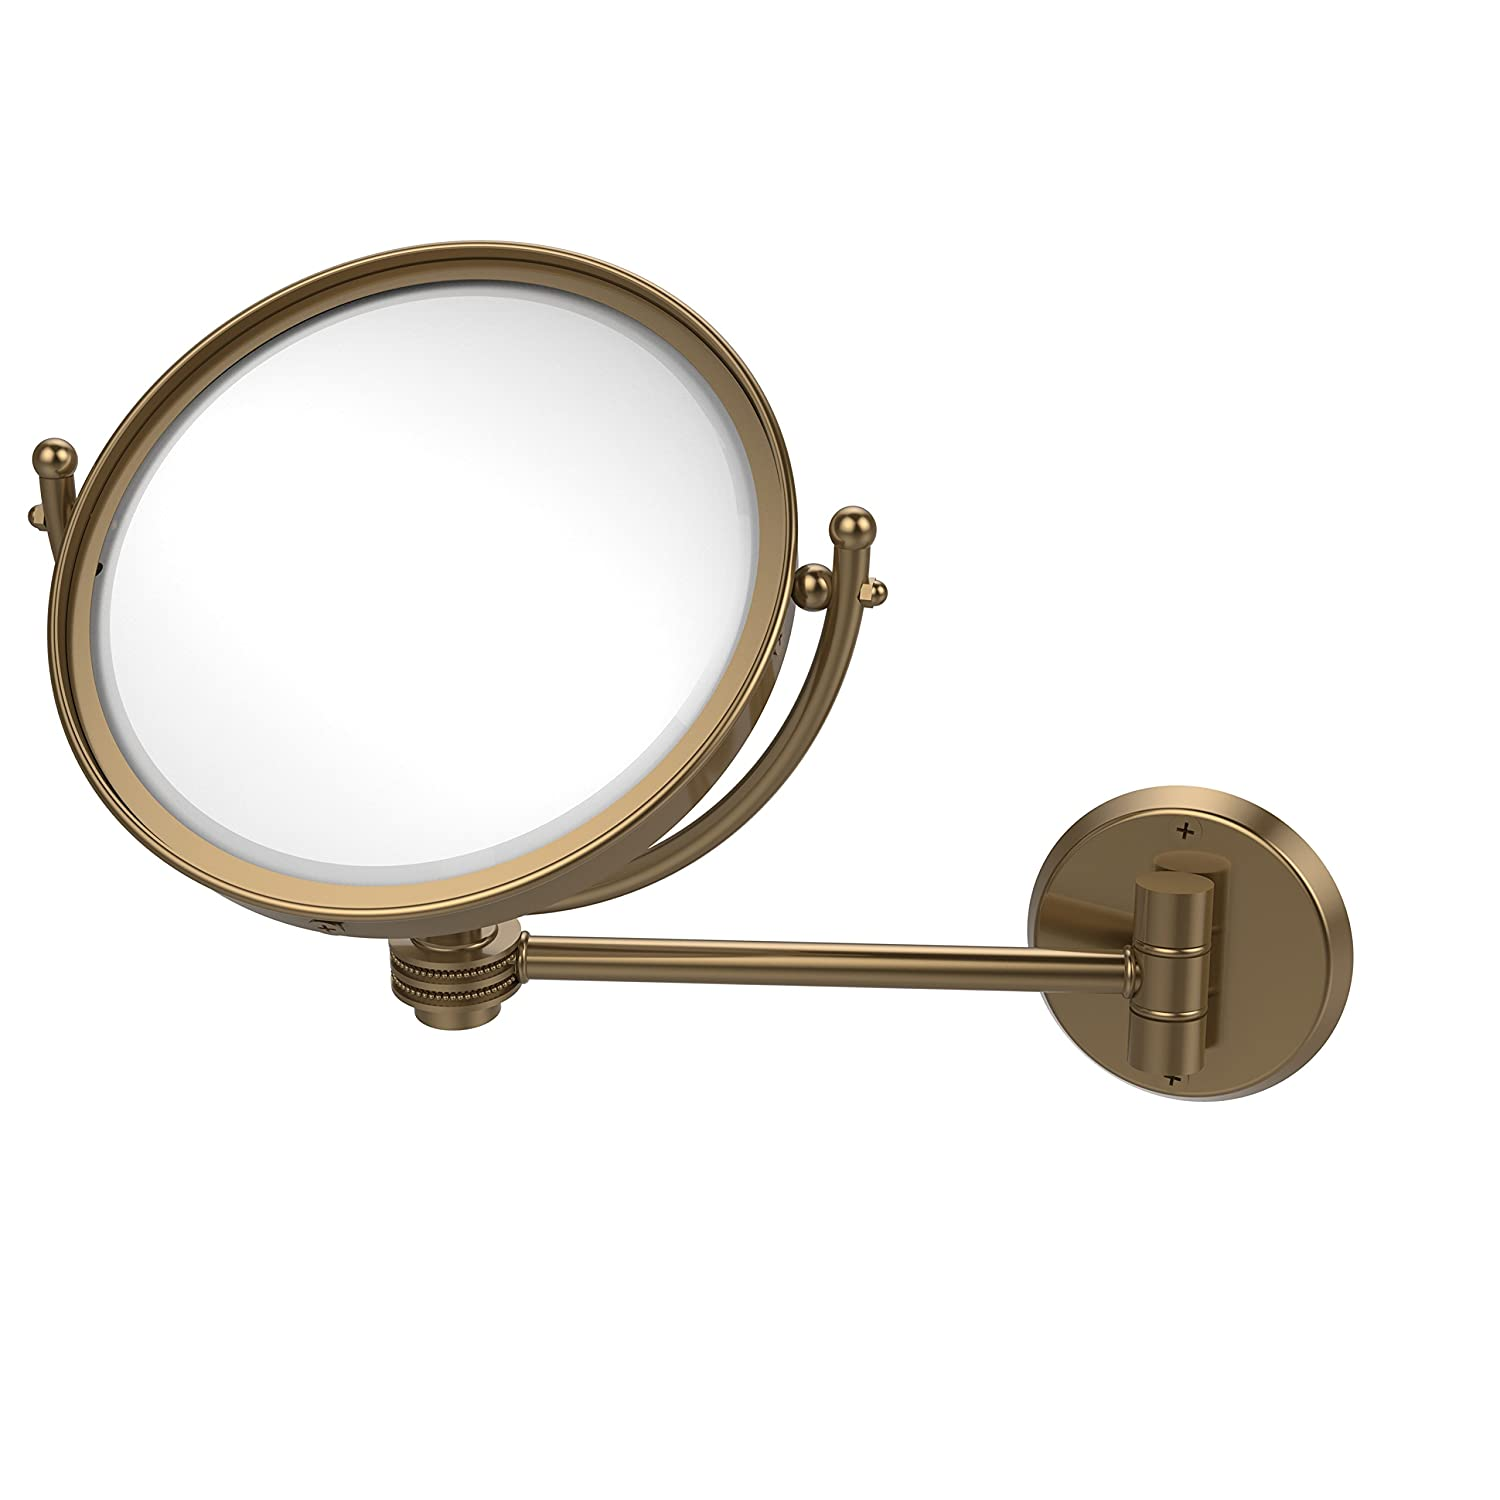 Allied Brass WM-5D//2X-BBR 8 Inch Wall Mounted Make-Up Mirror 2X Magnification Brushed Bronze